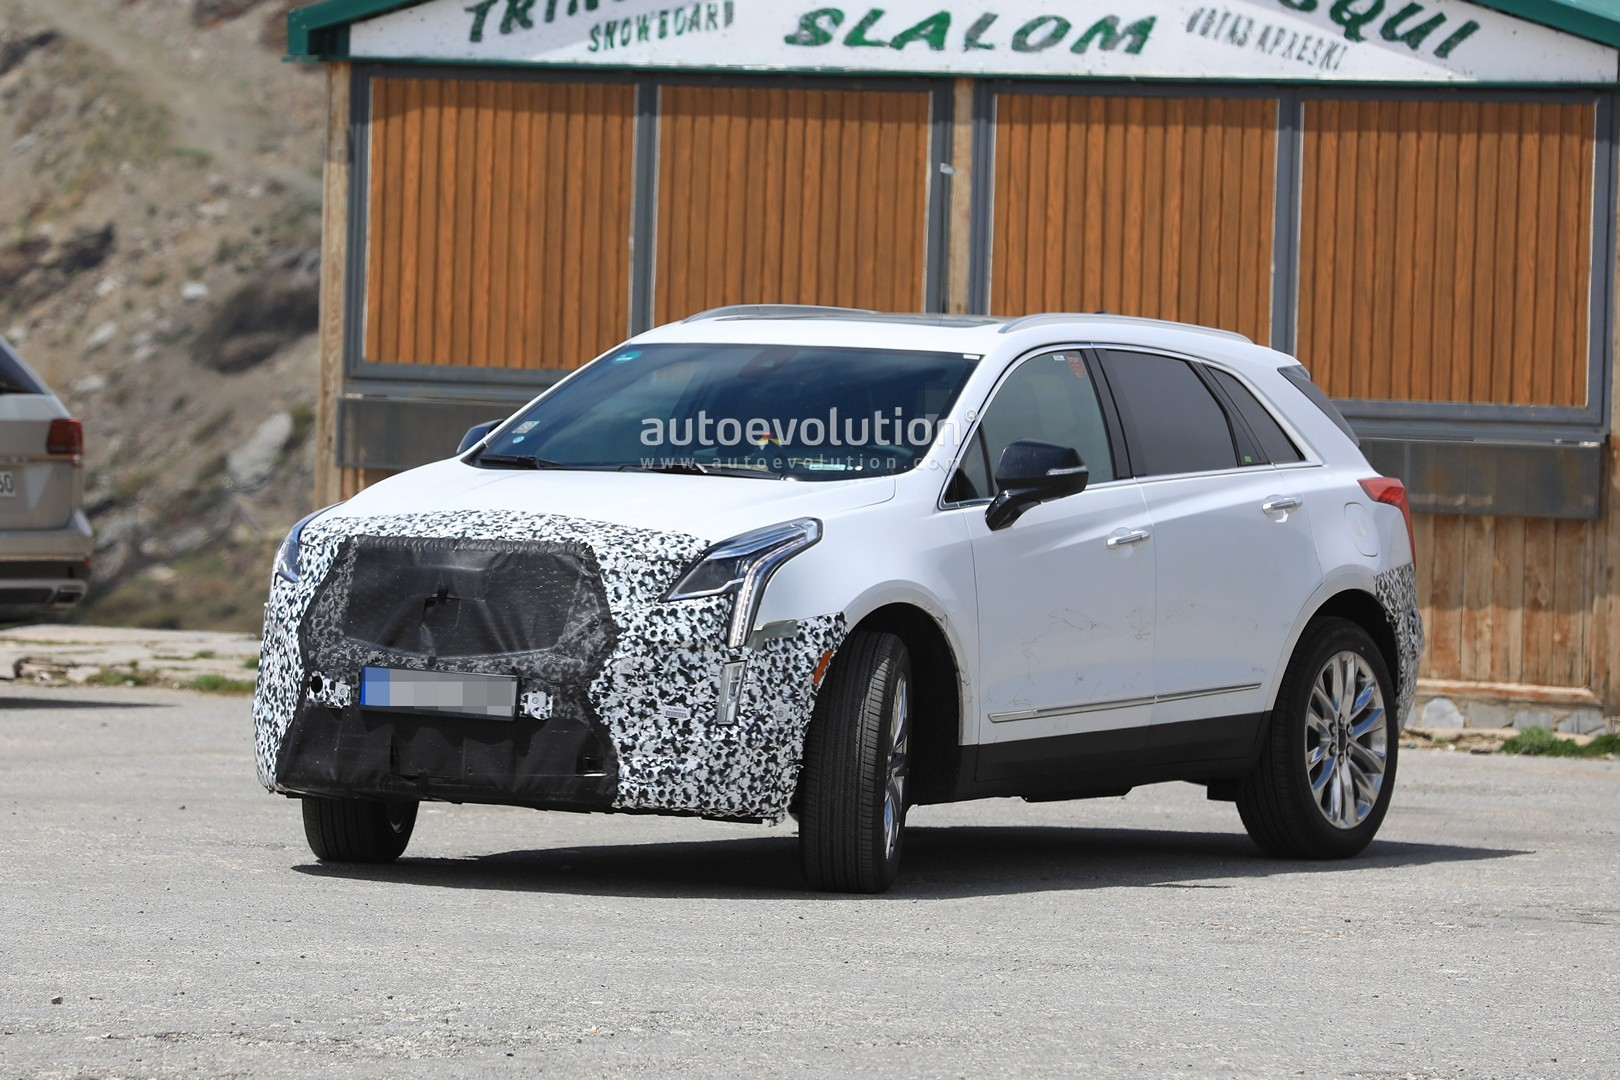 Cadillac Xt Facelift Prototype Spied In Europe on Cadillac 500 Engine Build